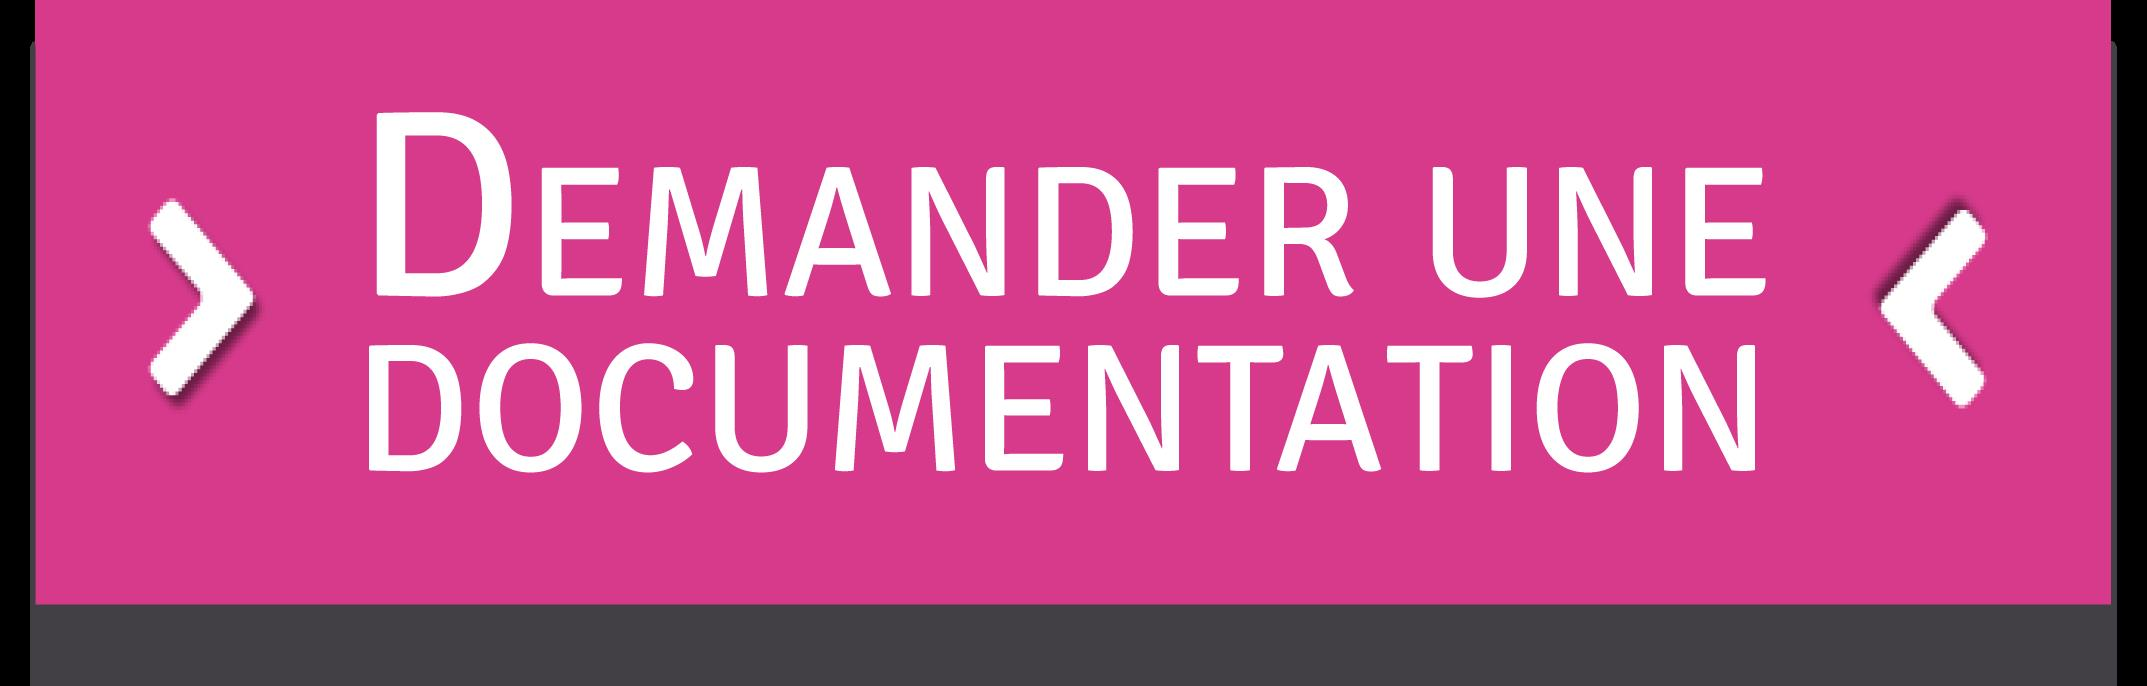 Demander une documentation Villas Club